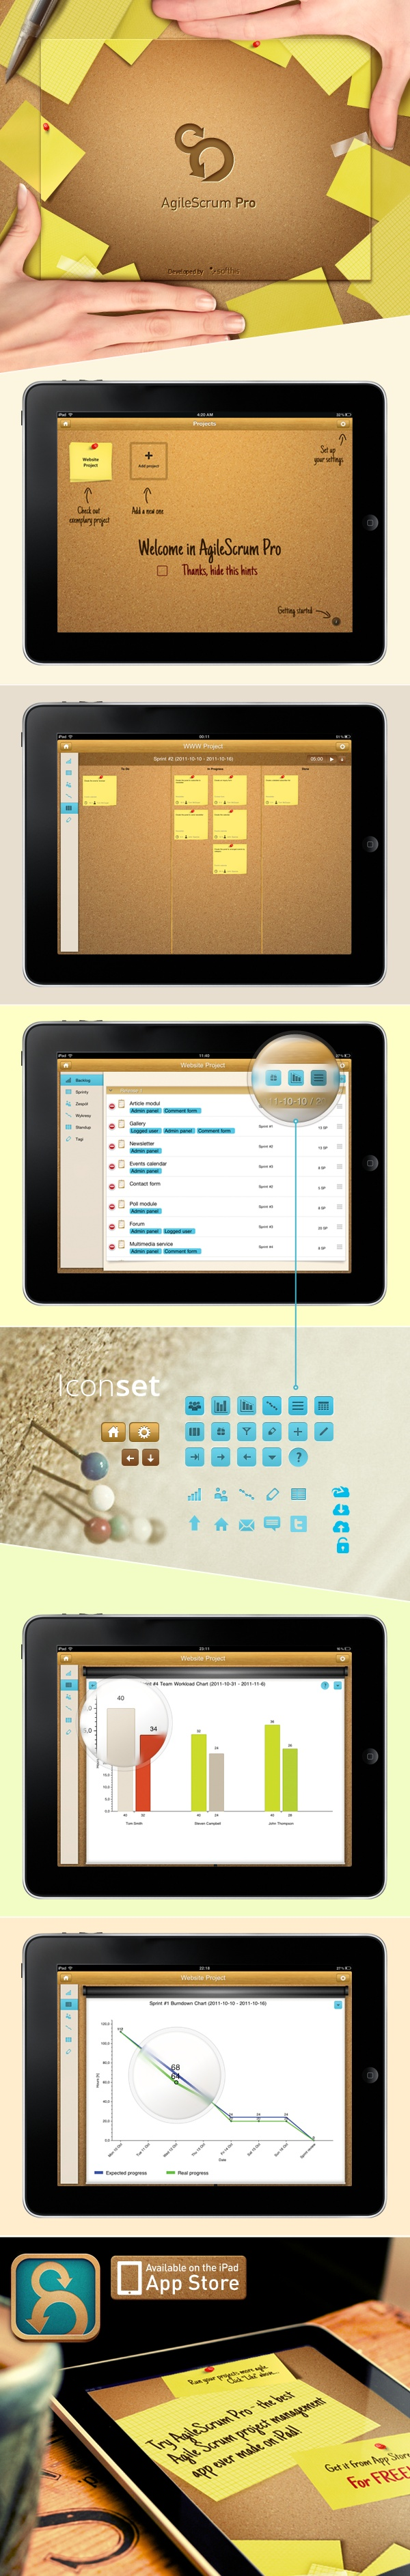 #AgileScrum Pro #application for #iPad #Scrum #management #app